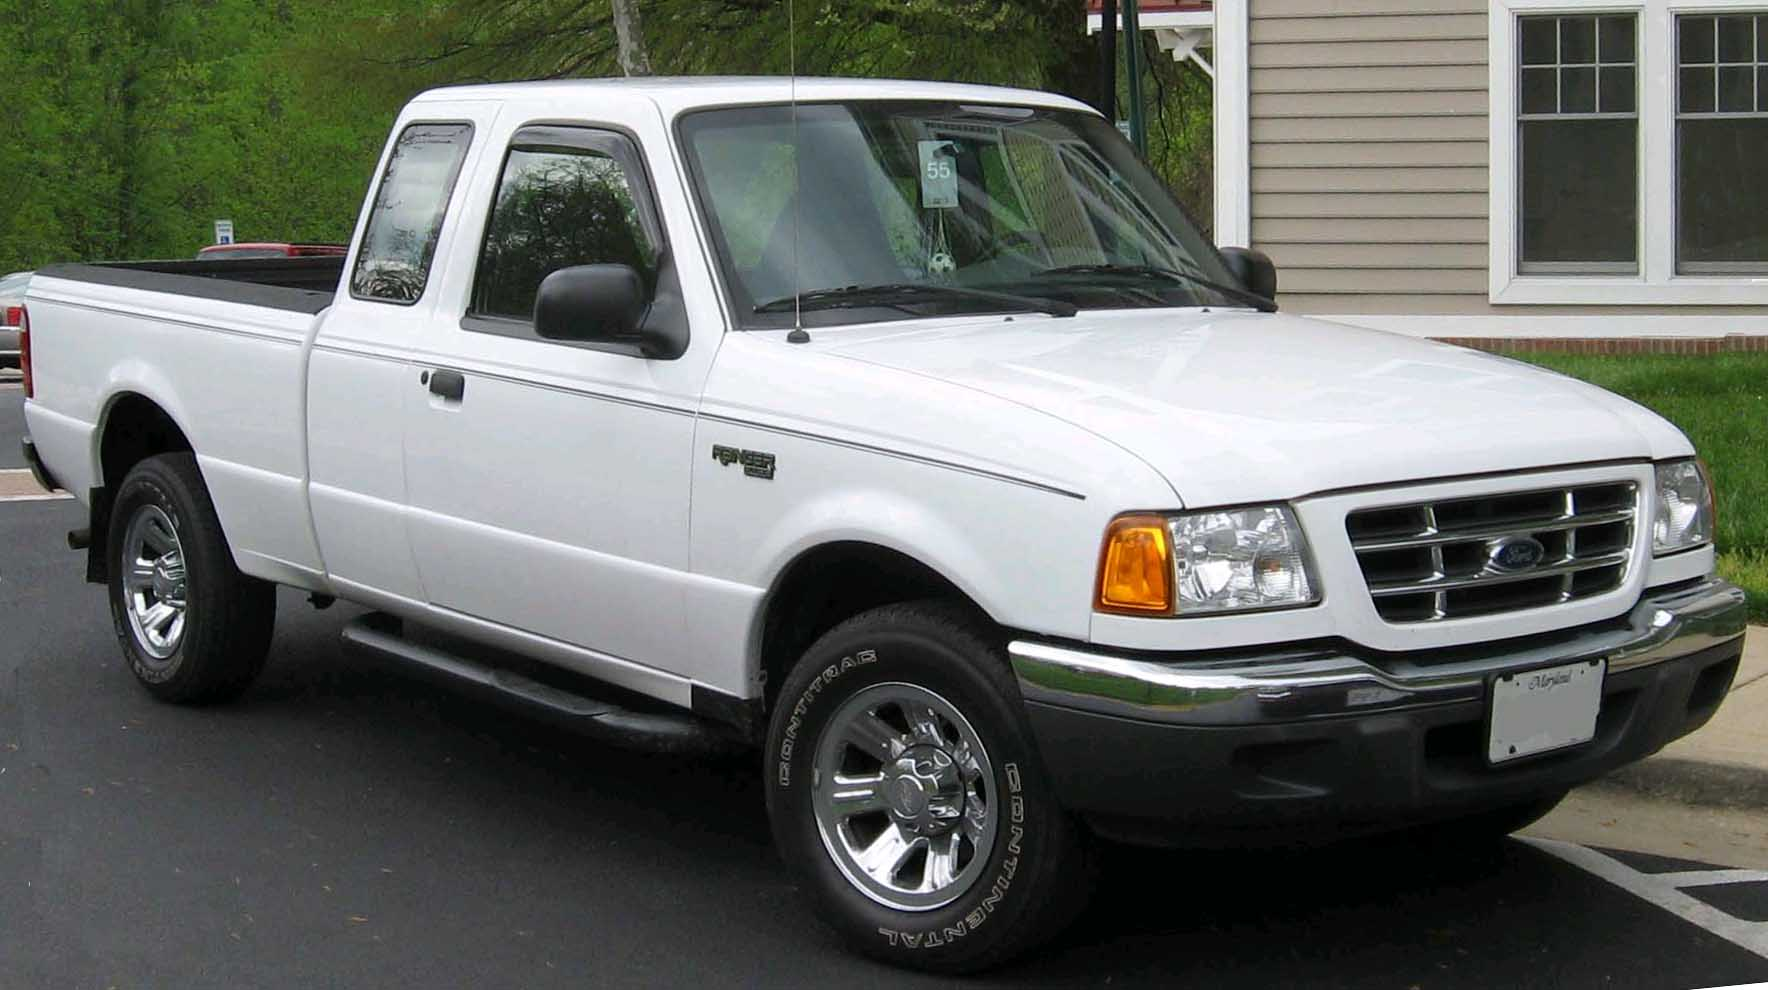 2003 Ford Ranger Information And Photos Momentcar Wiring Diagram For 1